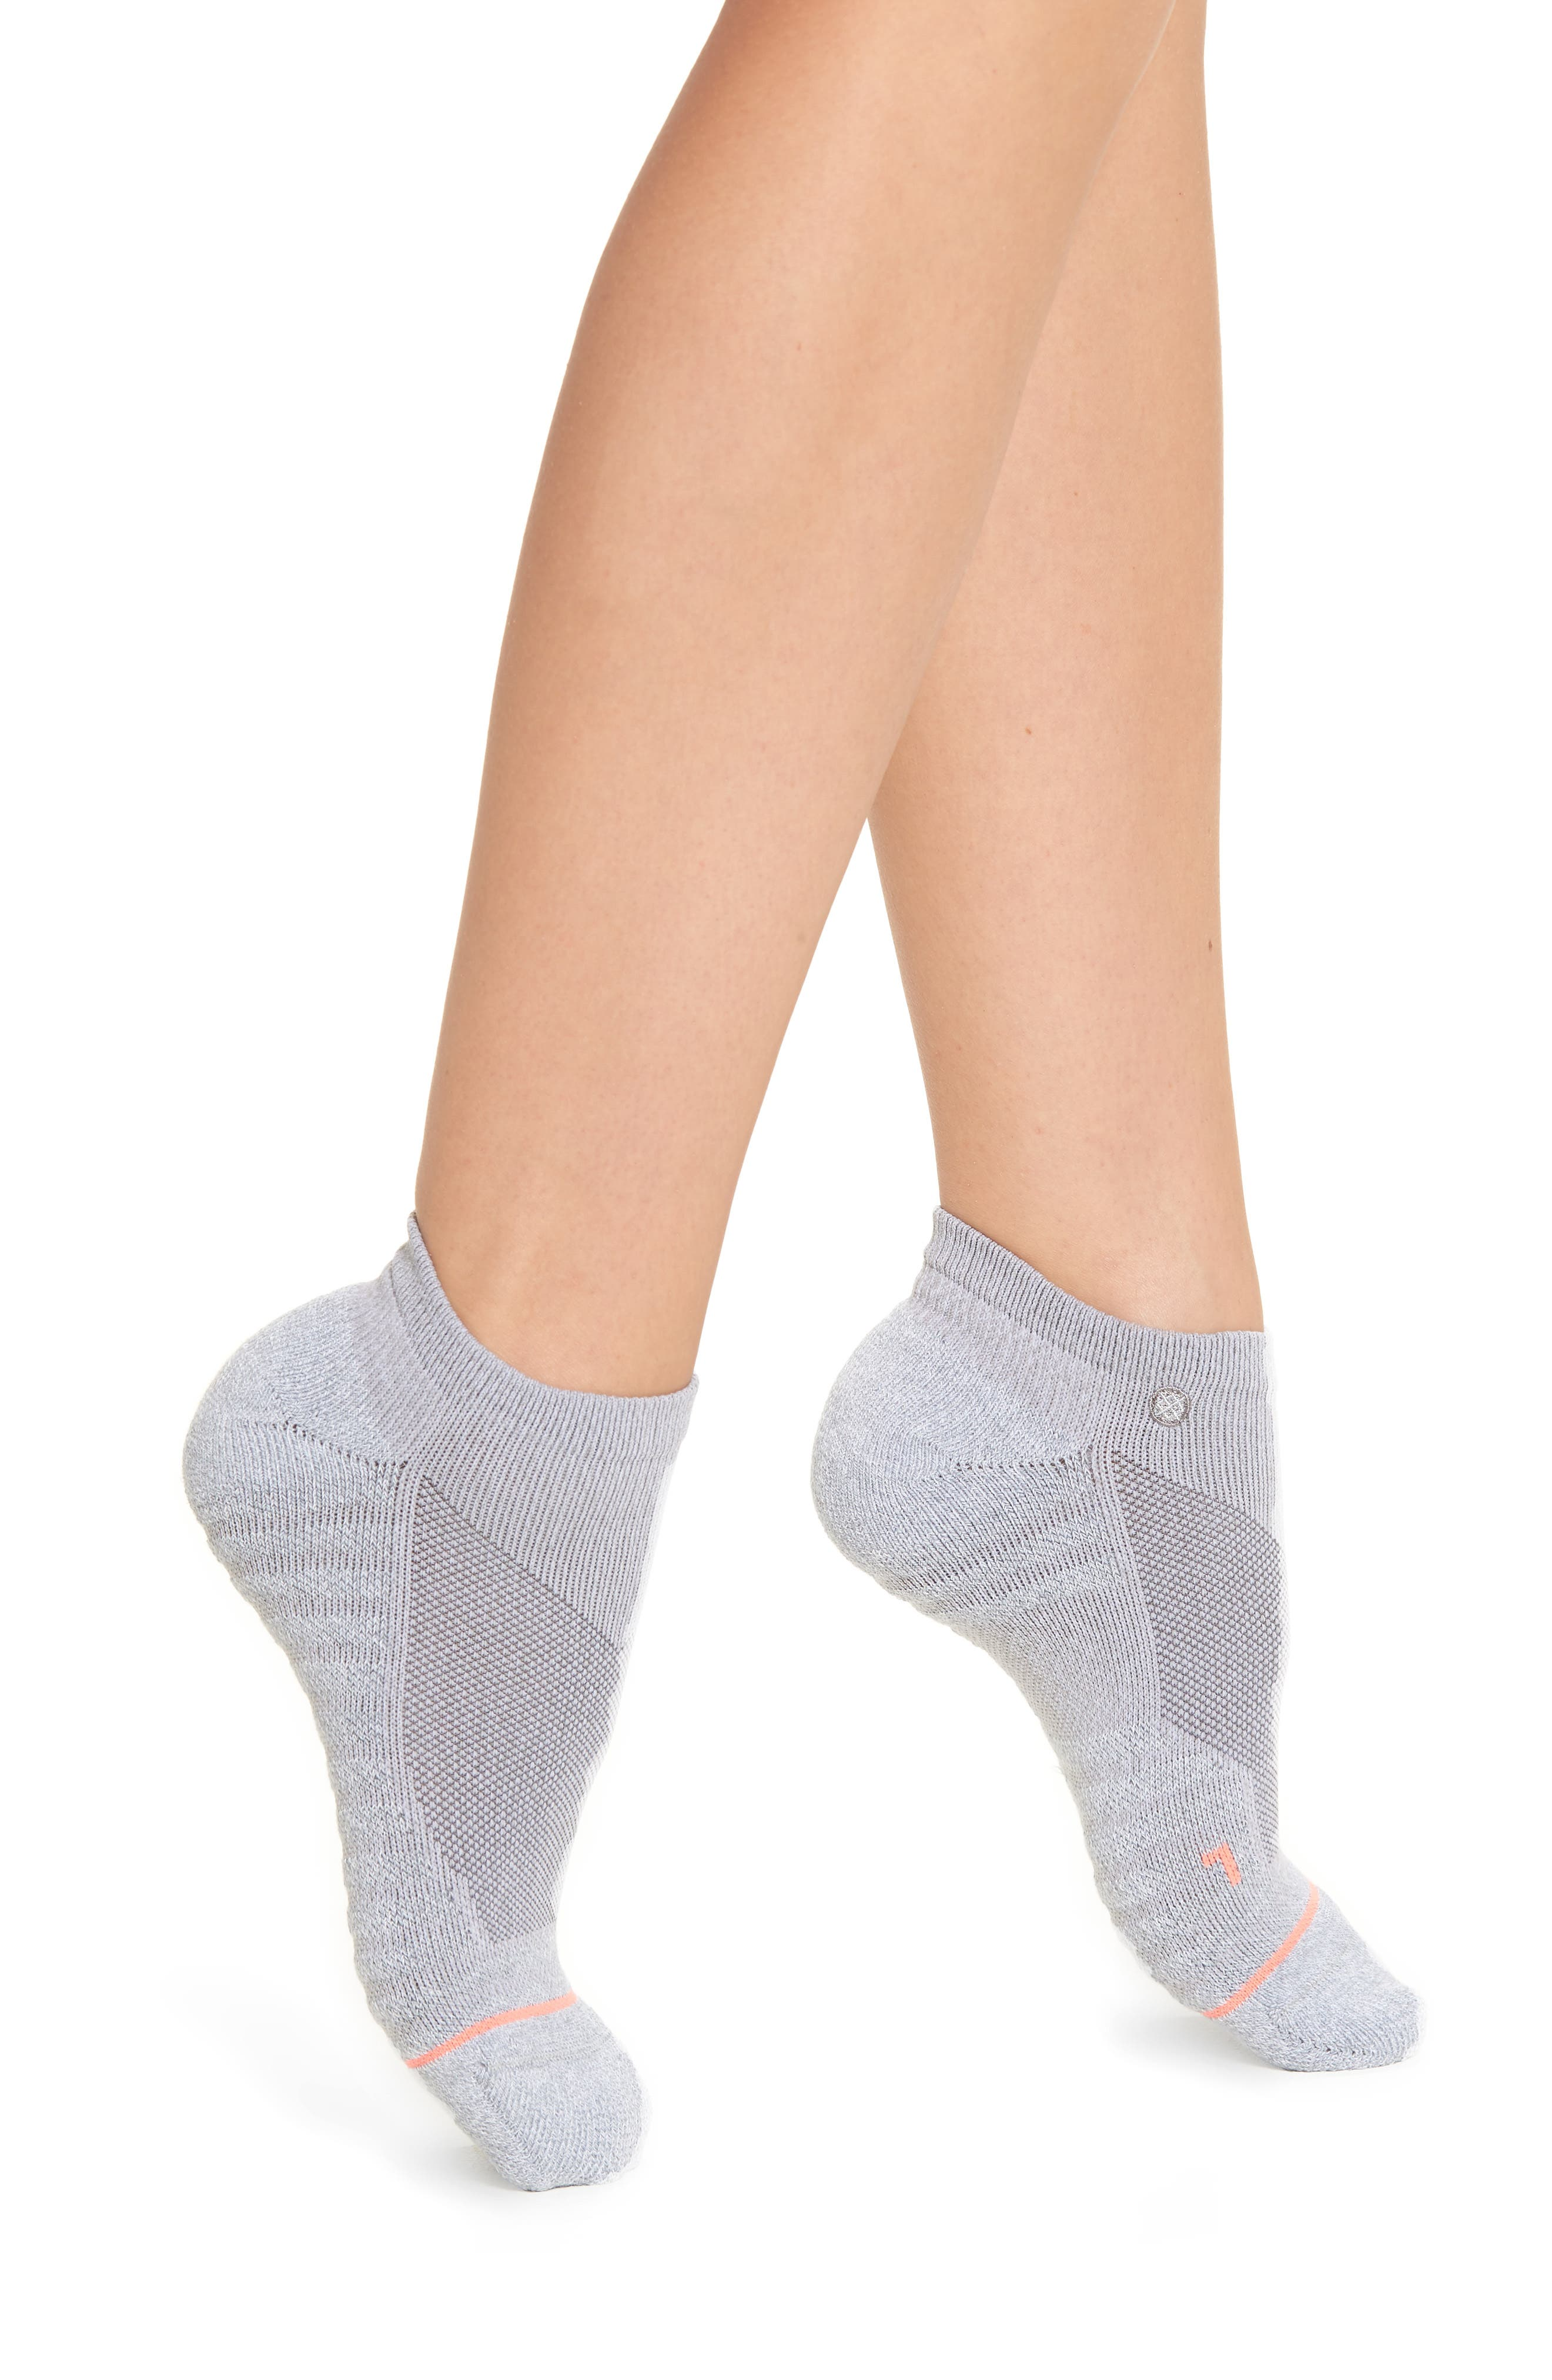 Icon Athletic Low Cut Socks,                             Main thumbnail 1, color,                             020